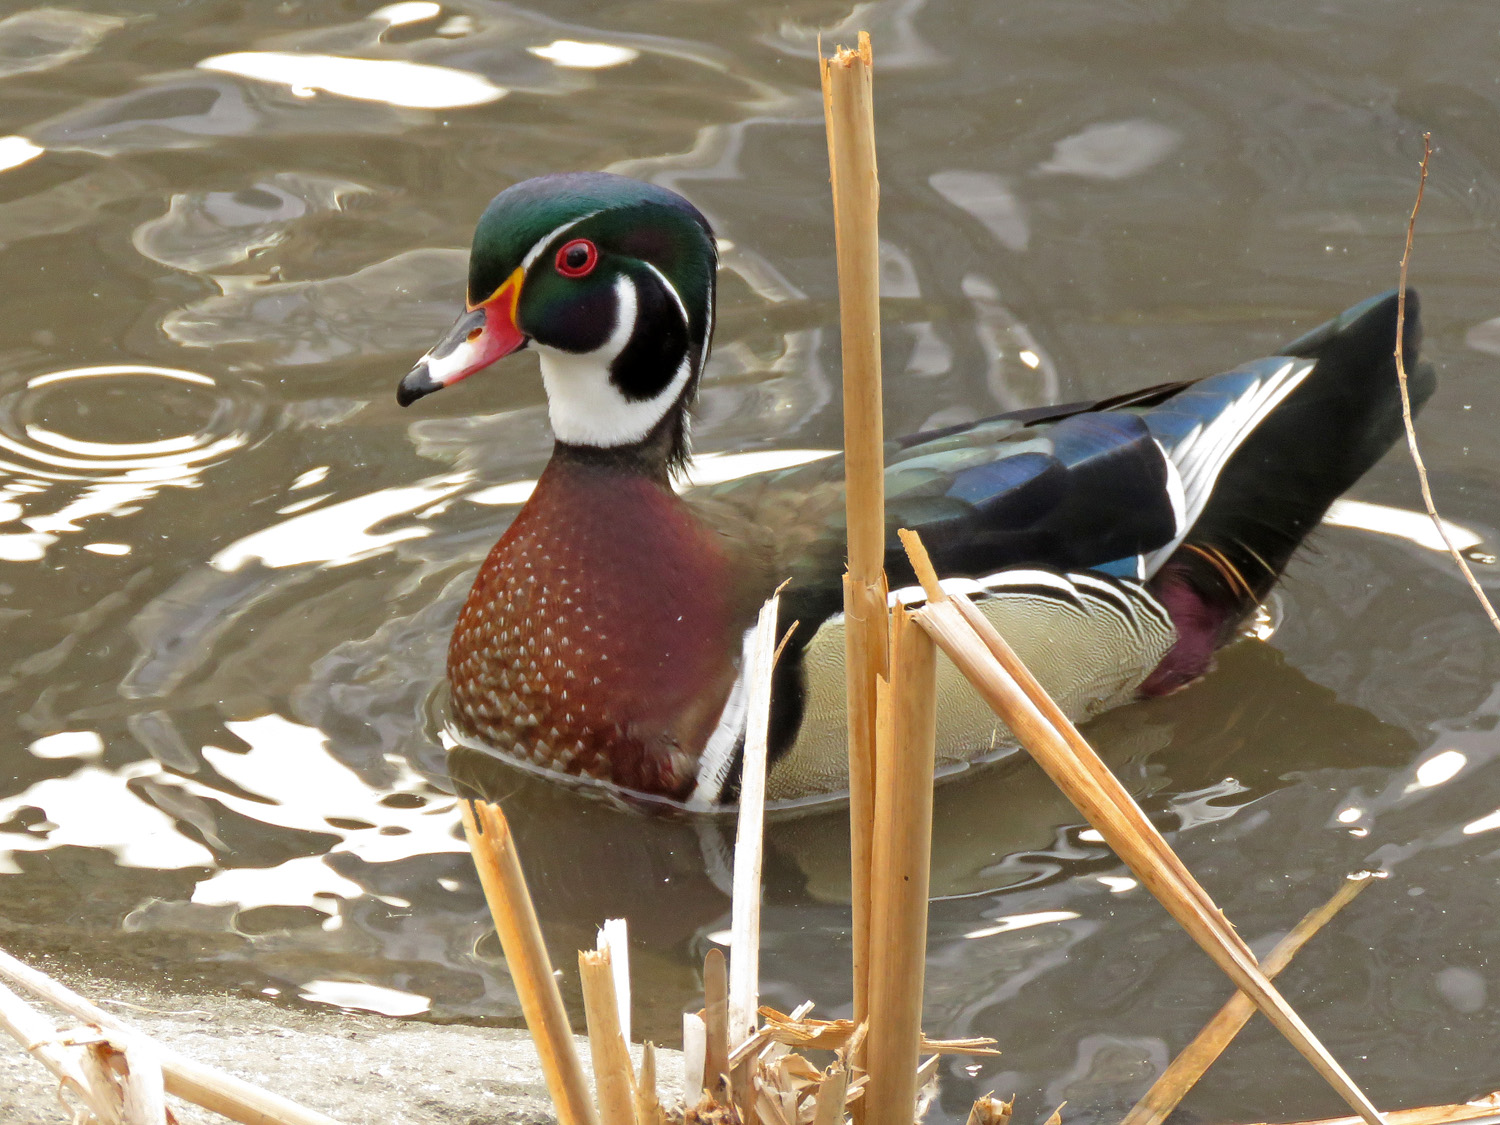 Woody at the Pond, March 20, 2019